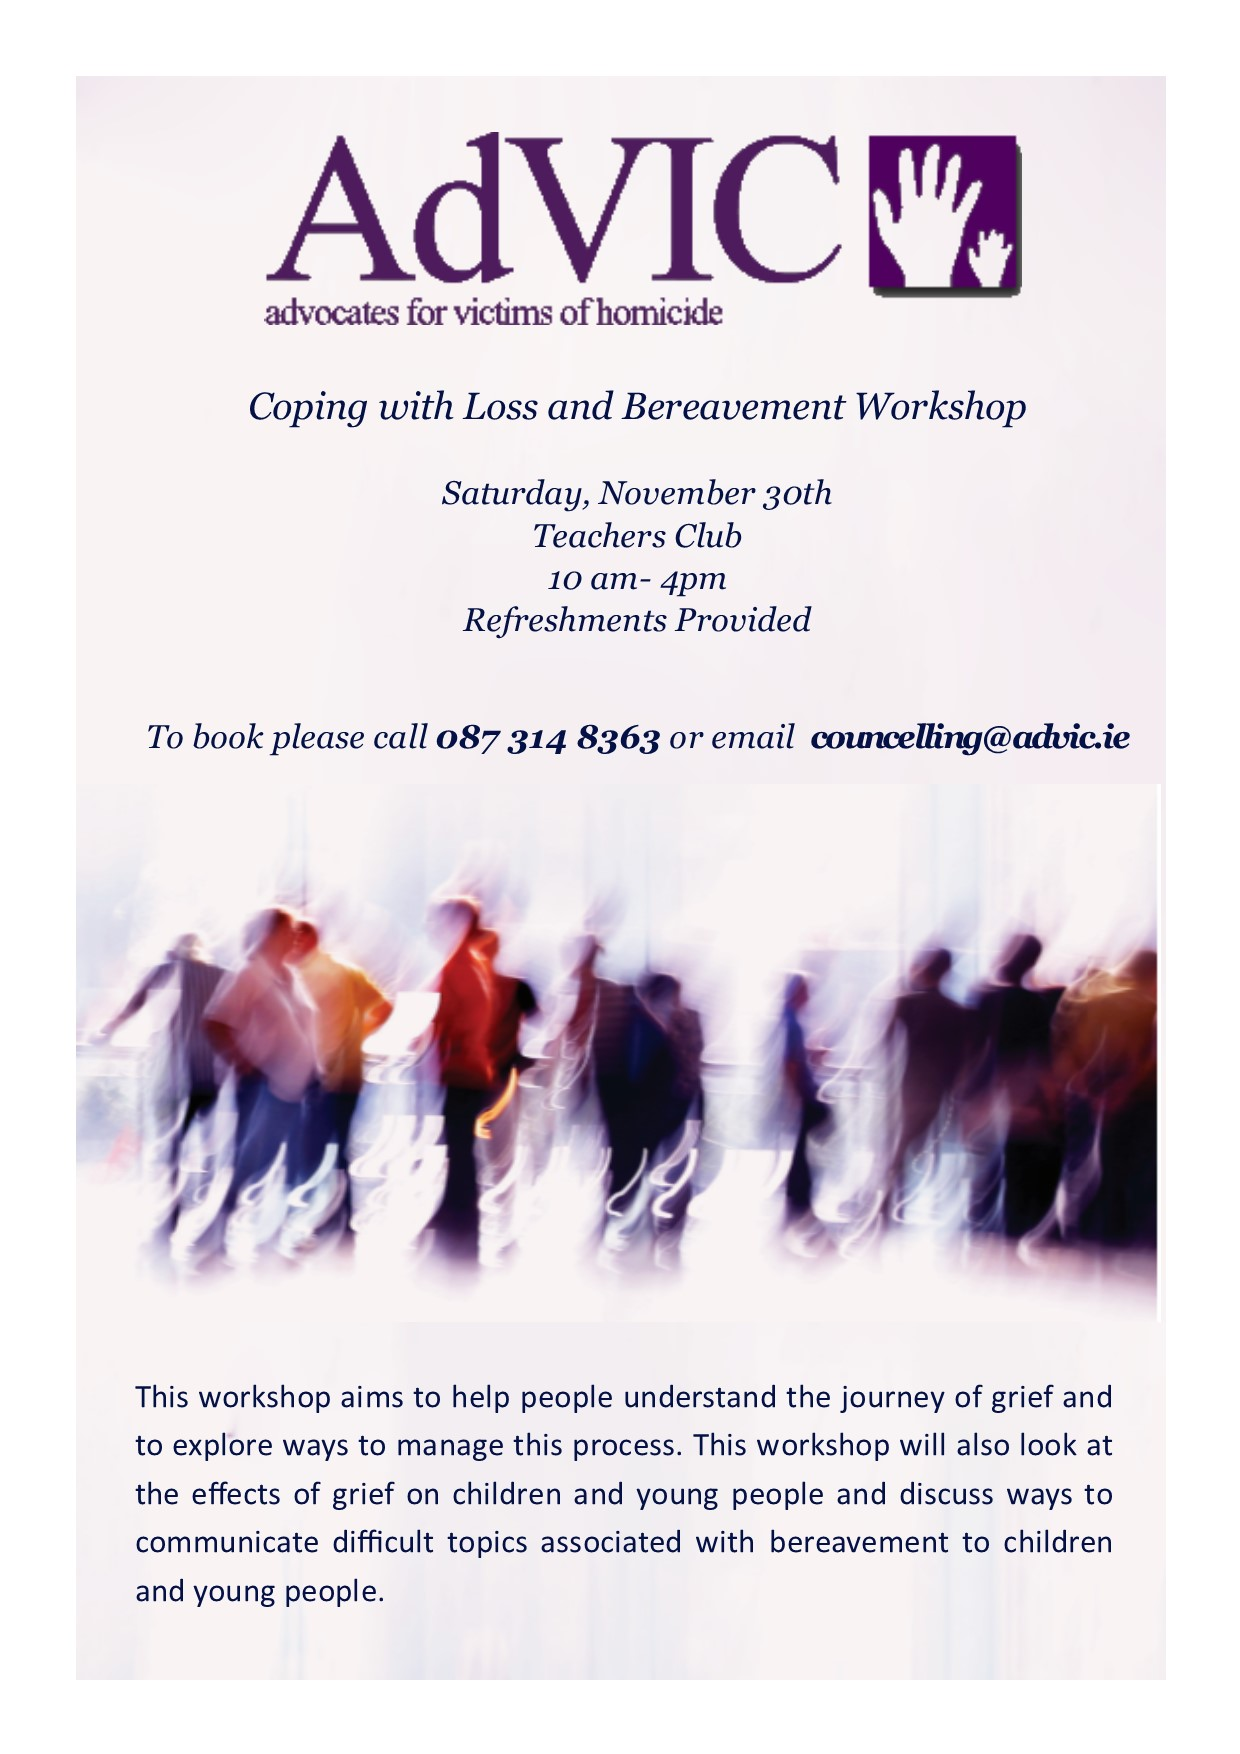 Coping With Loss & Bereavement Workshop – 10am to 4pm, Sat Nov 30th, Teachers Club